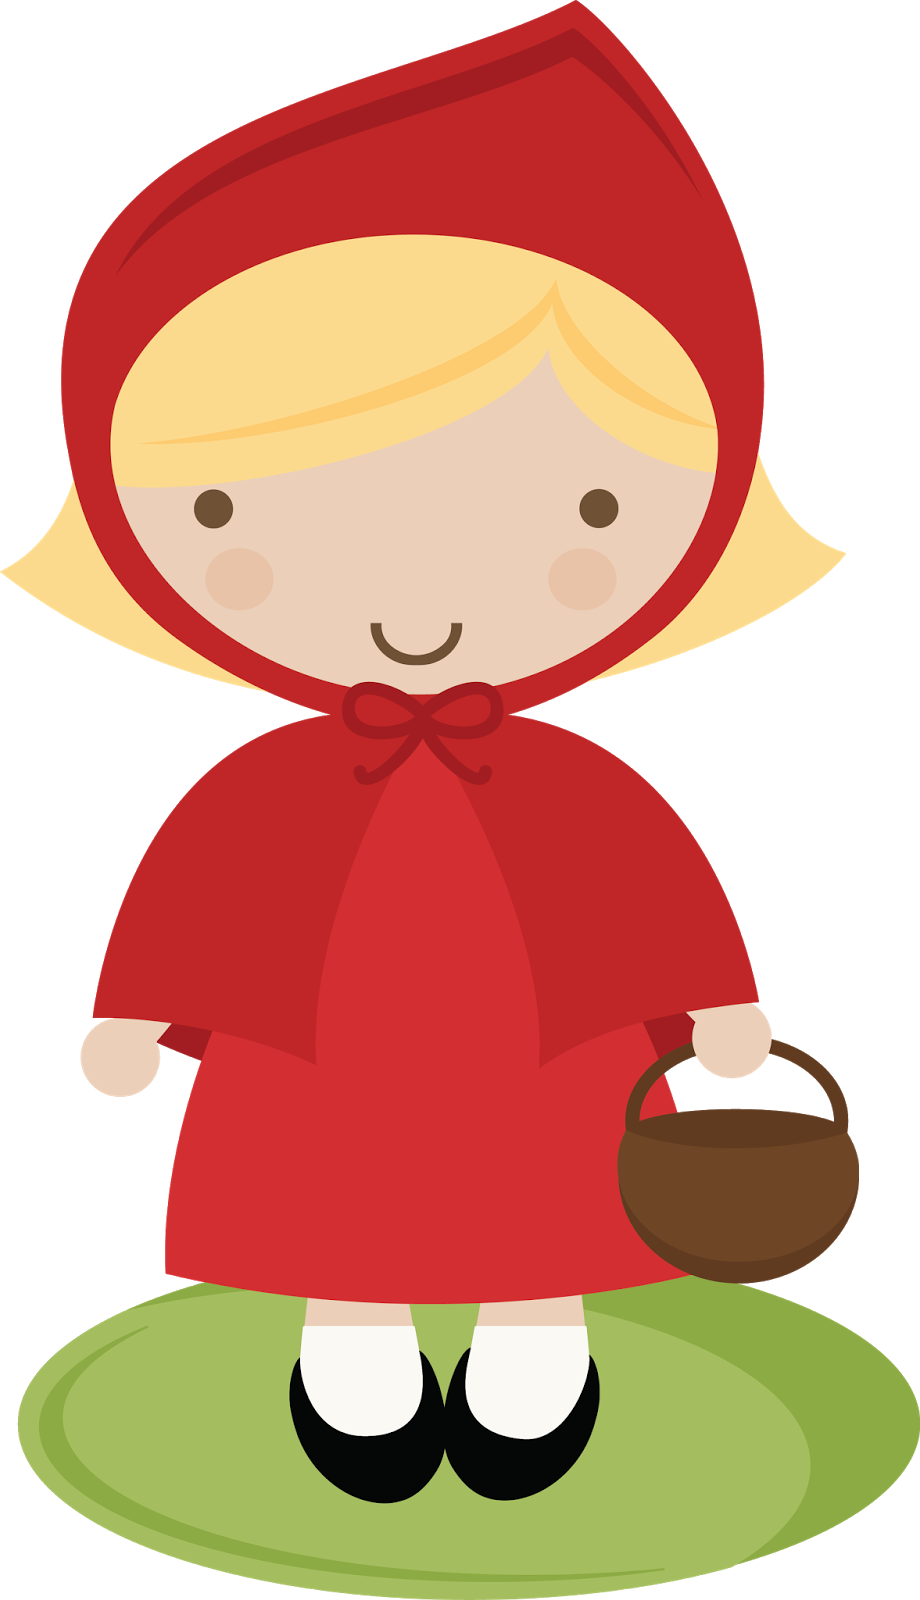 Flour clipart drawing. Little red riding hood